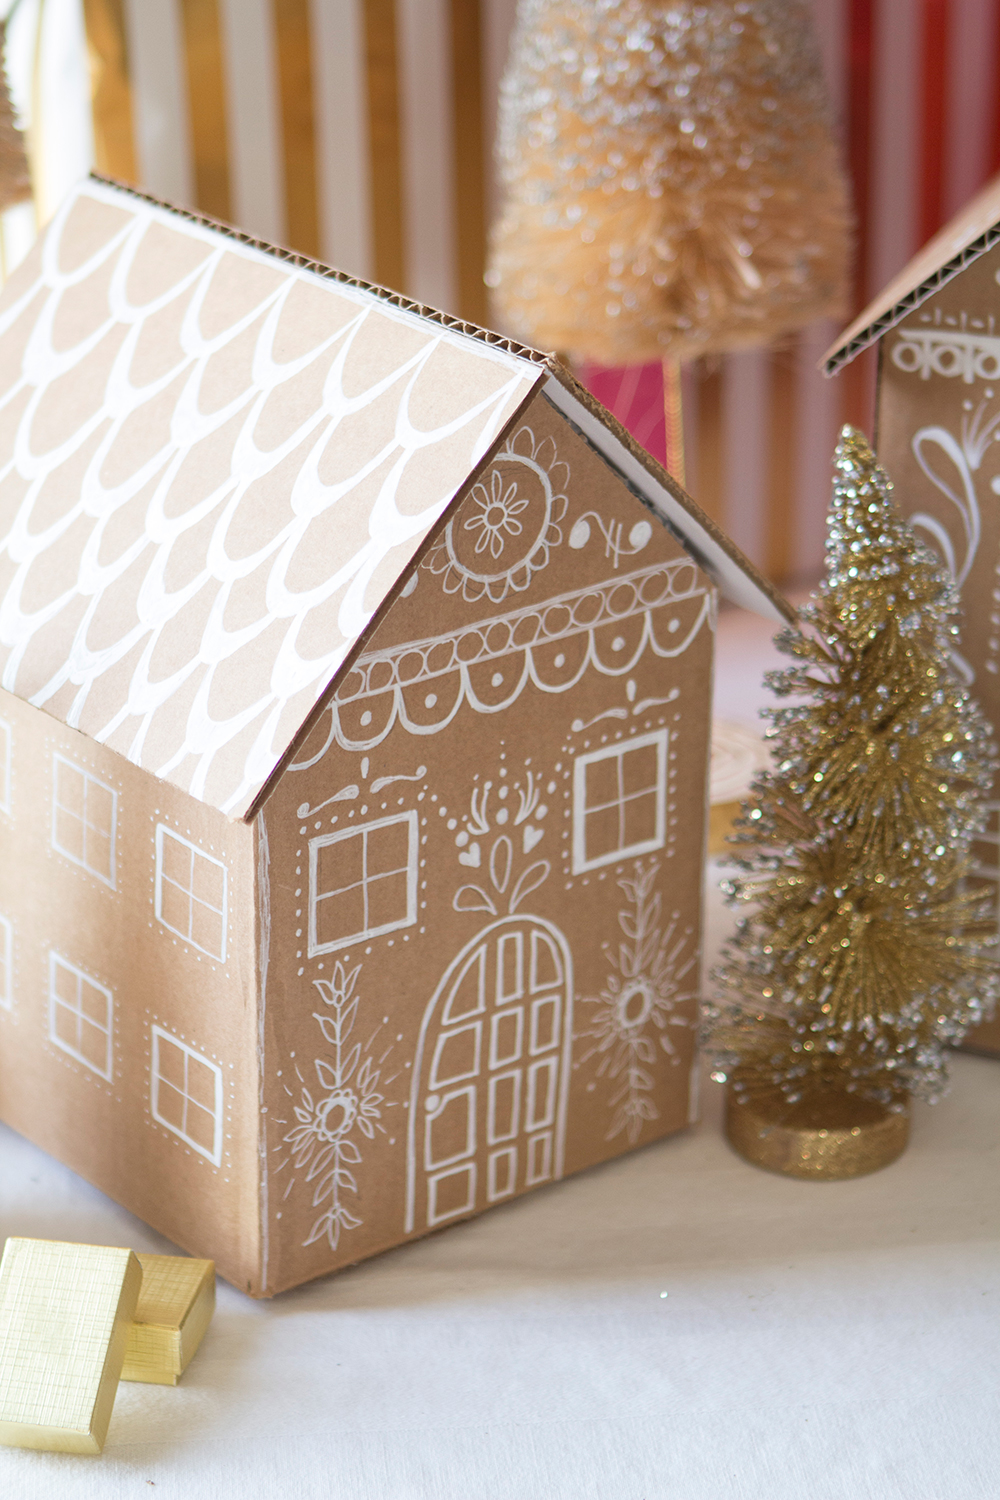 Diy Gingerbread Gift Box Video The House That Lars Built